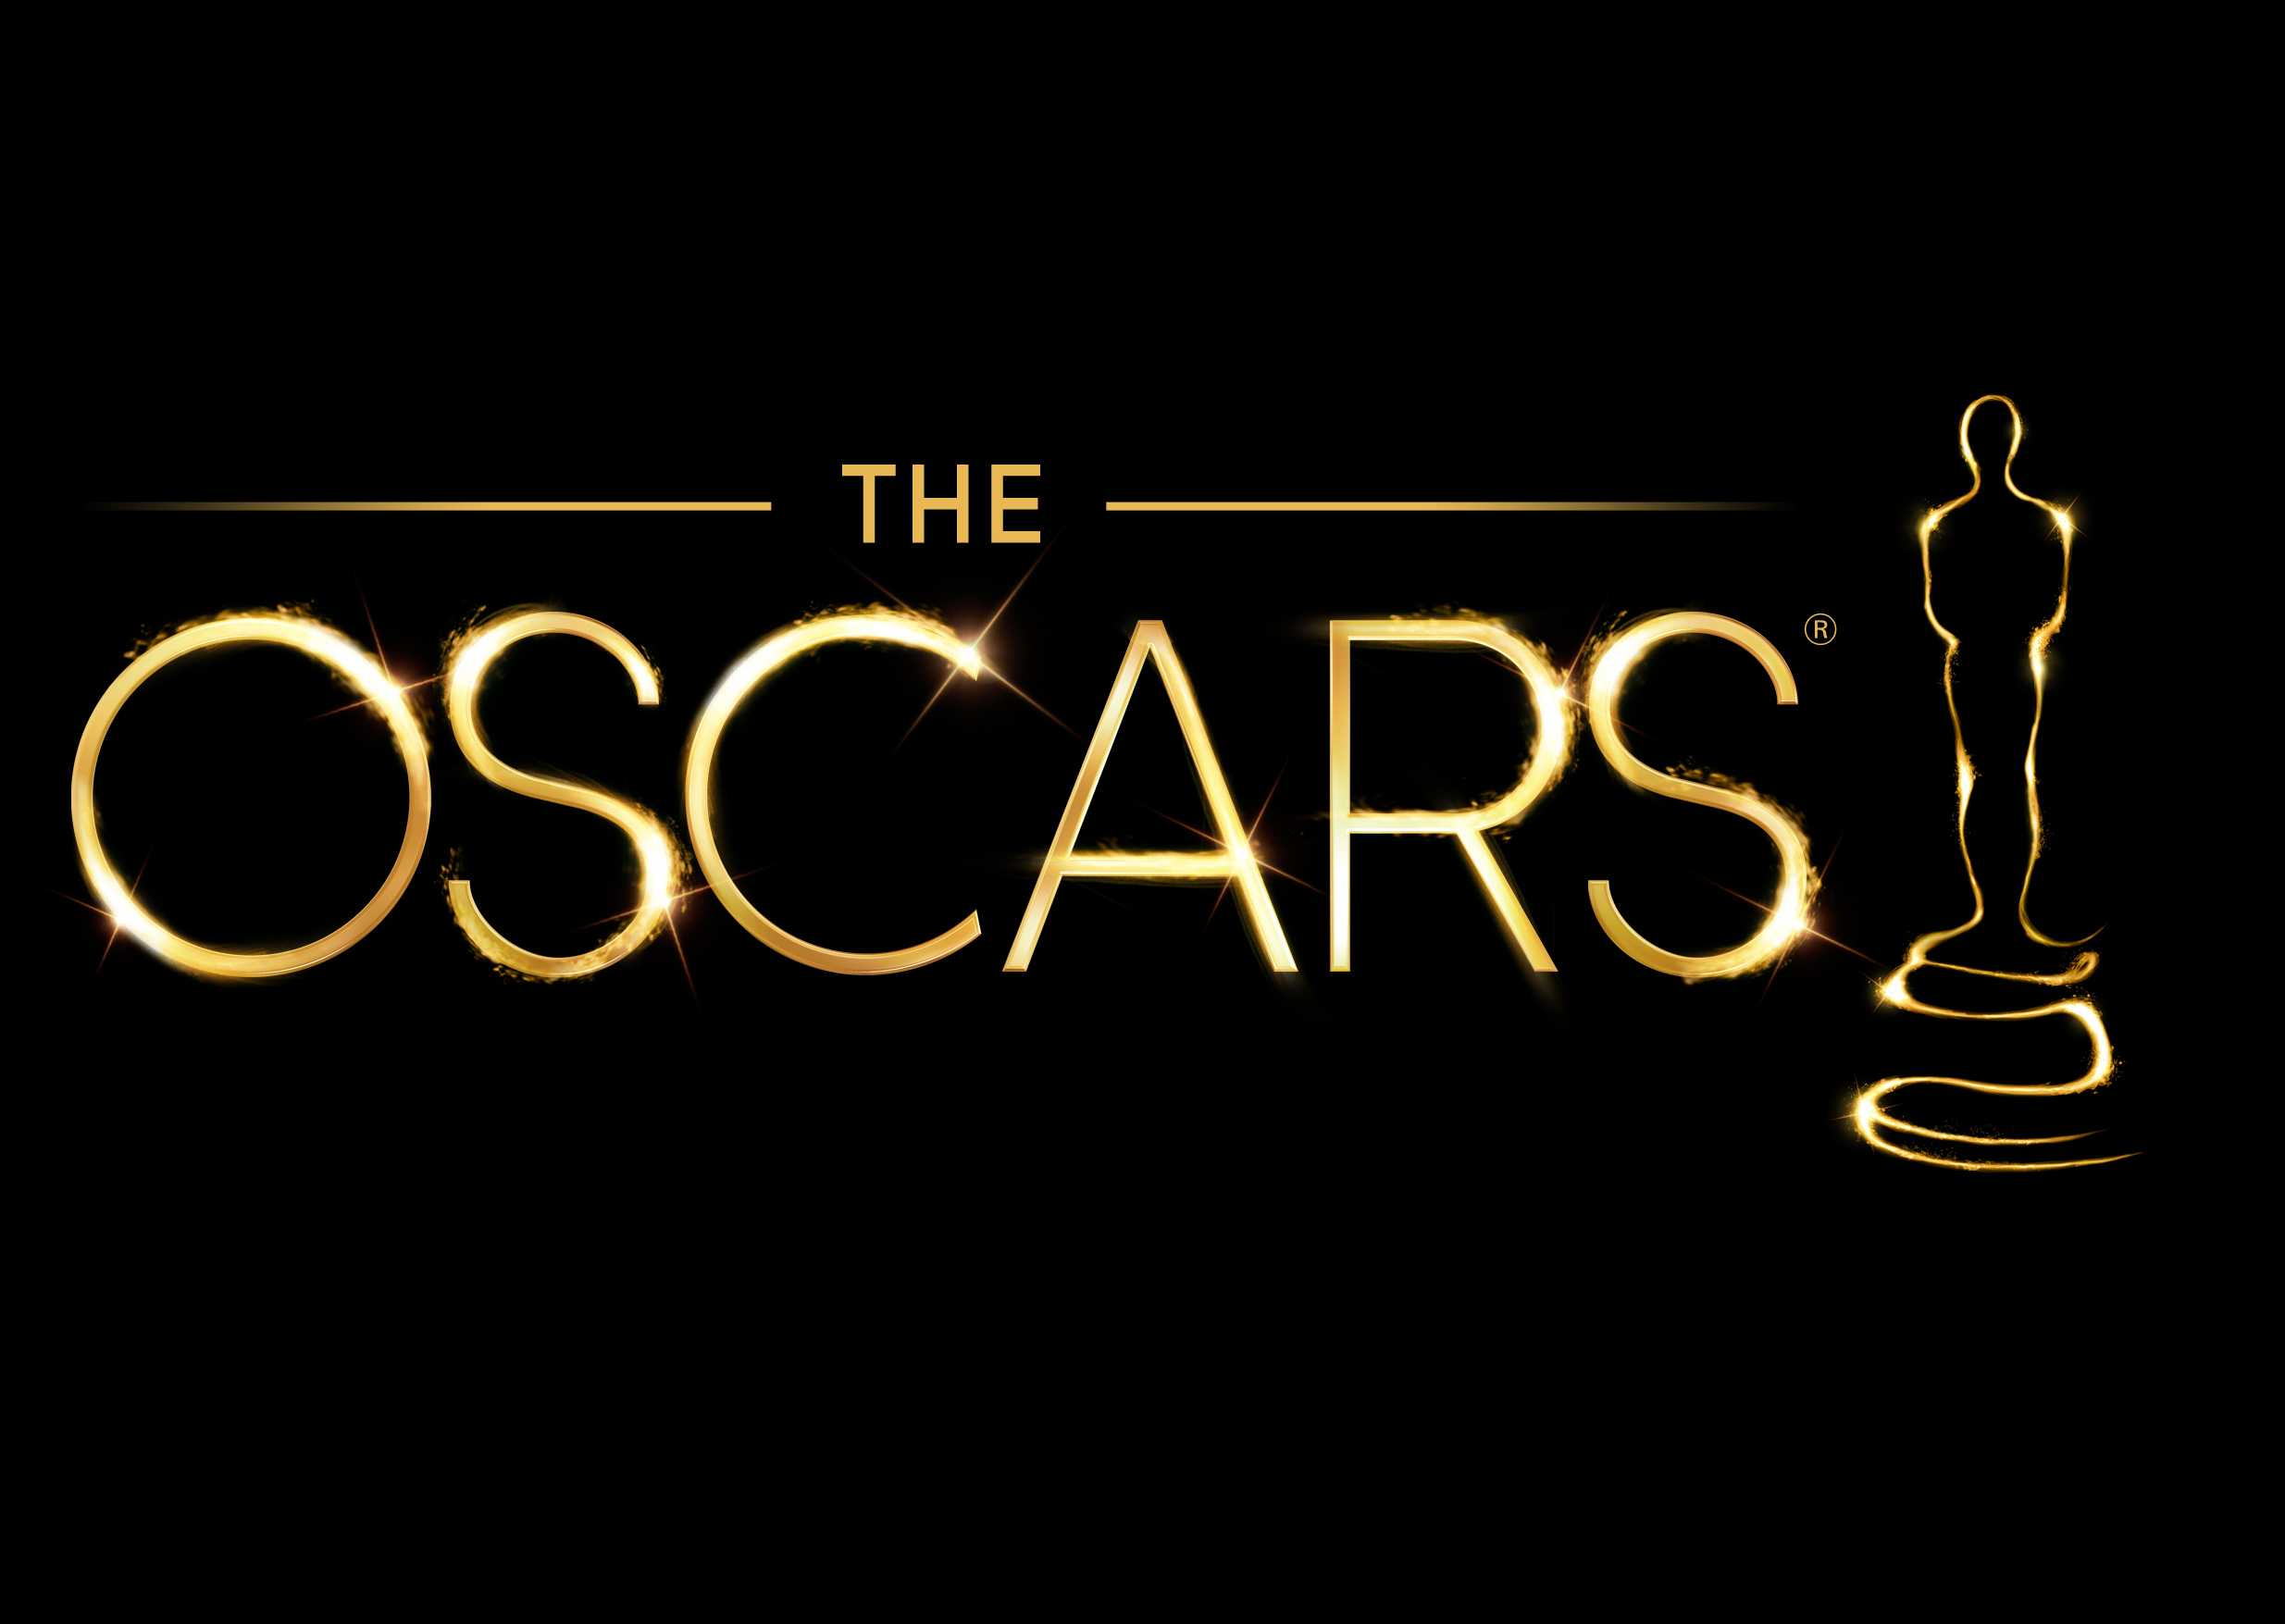 Review: The Oscars